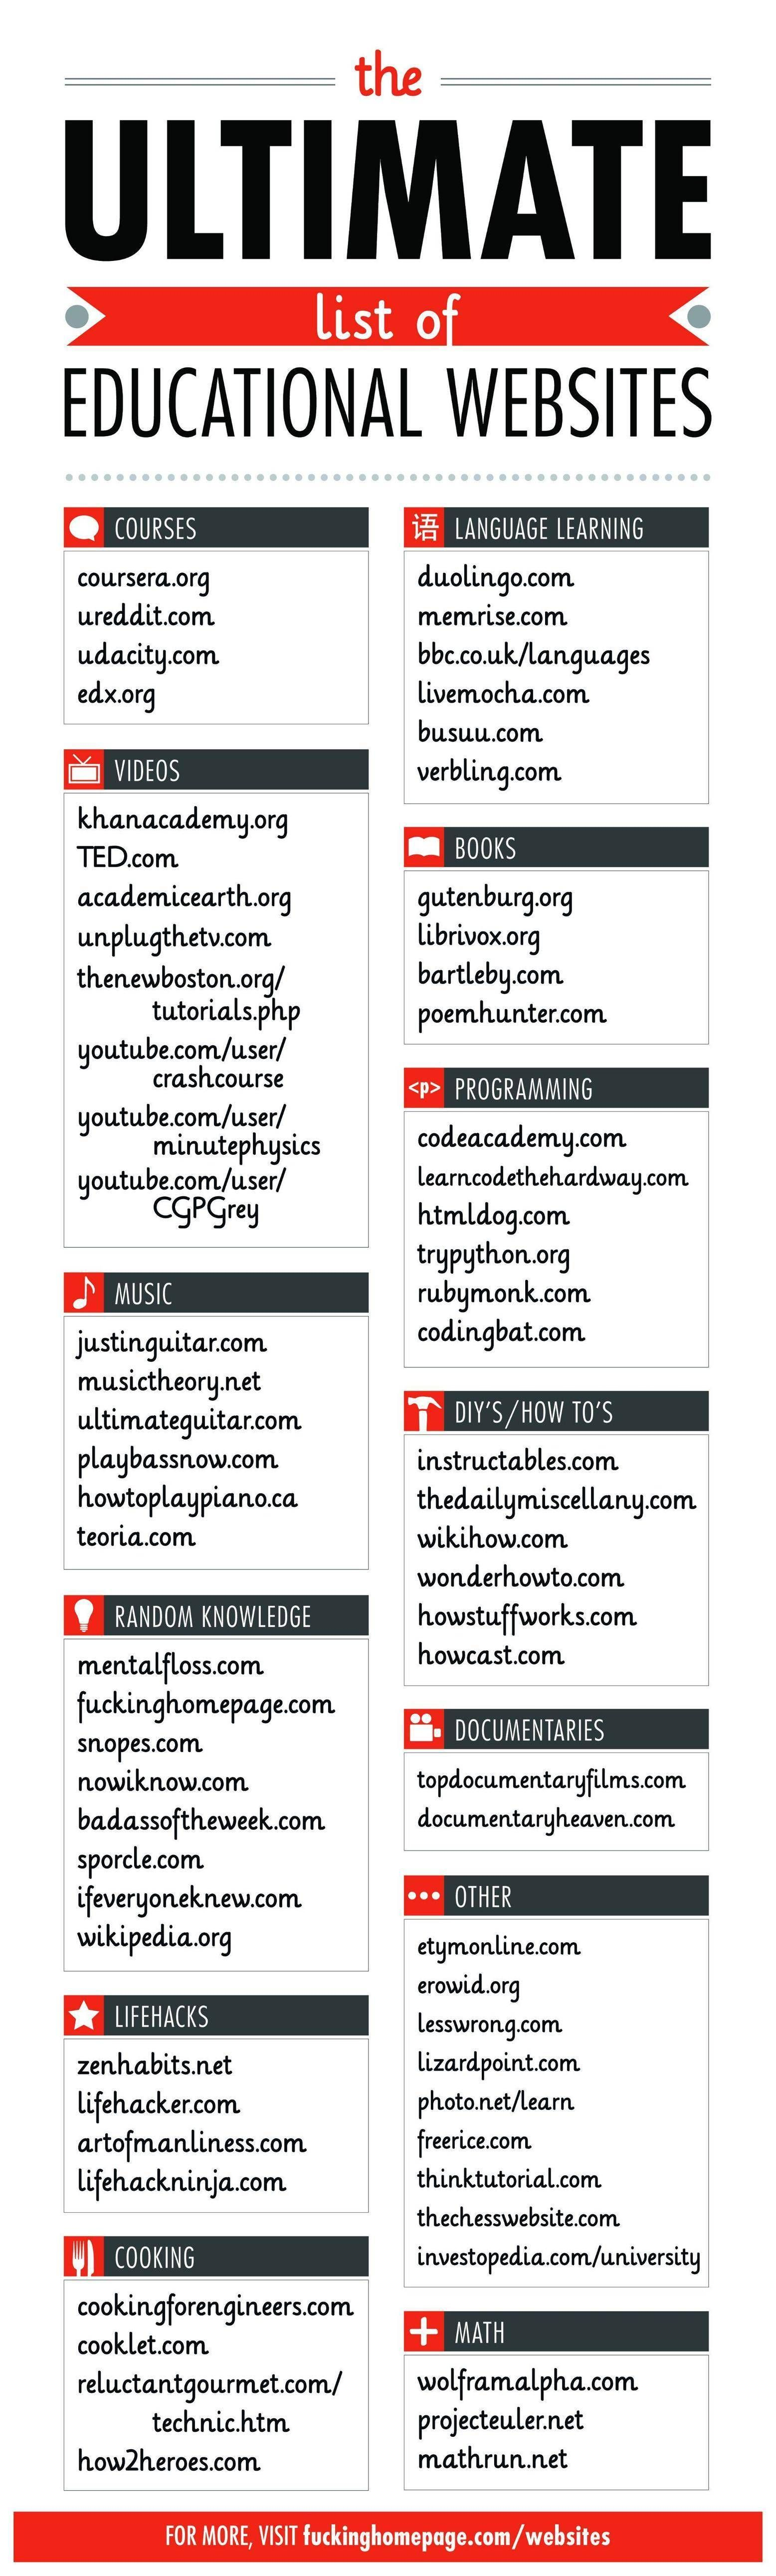 the ultimate list of educational websites language infographic internet